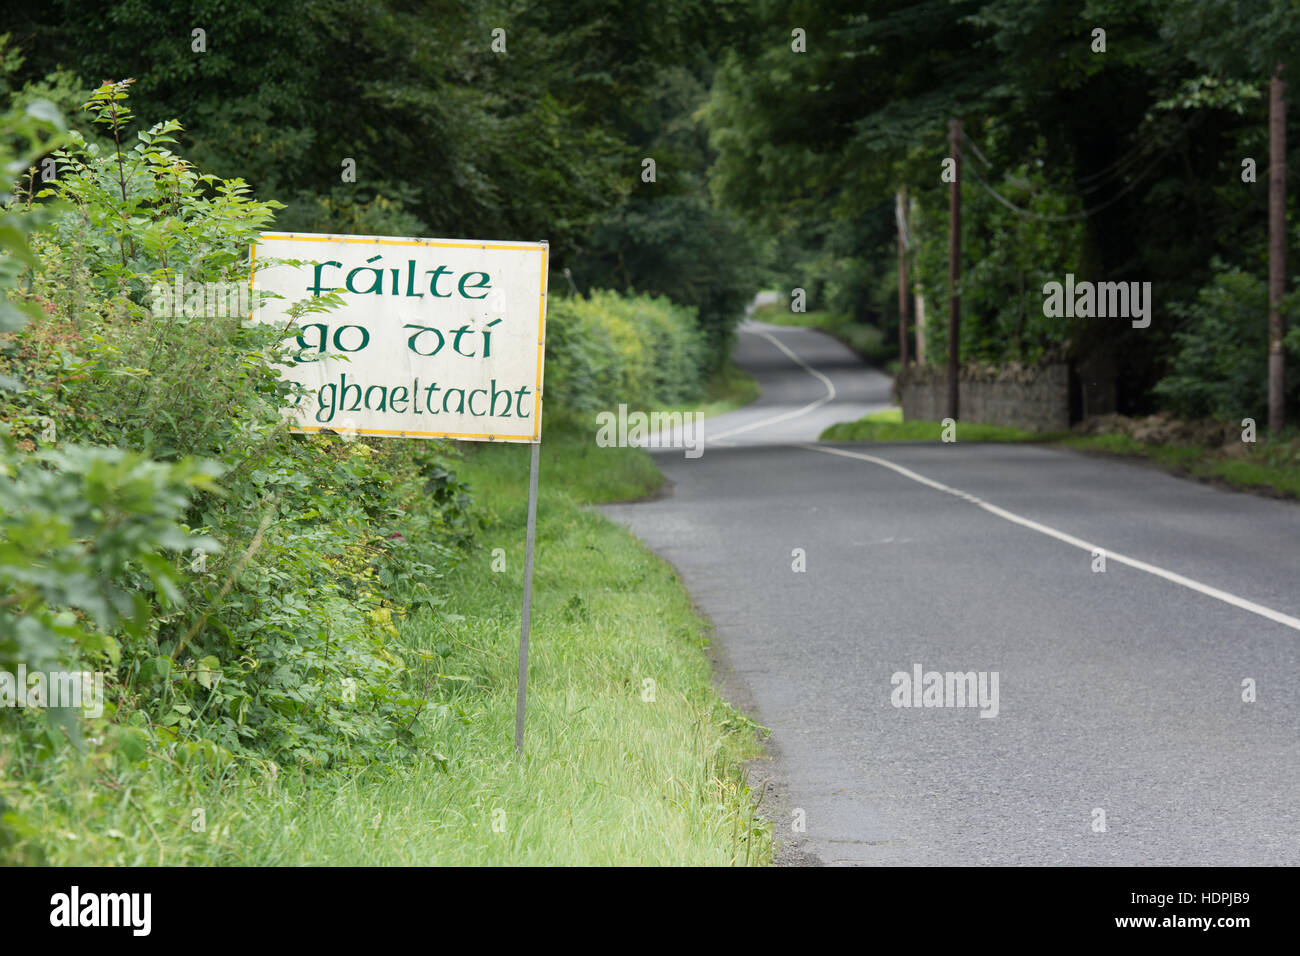 Sign in Irish language welcoming visitors to the gaeltacht (Irish-speaking) part of county Meath in Ireland. - Stock Image